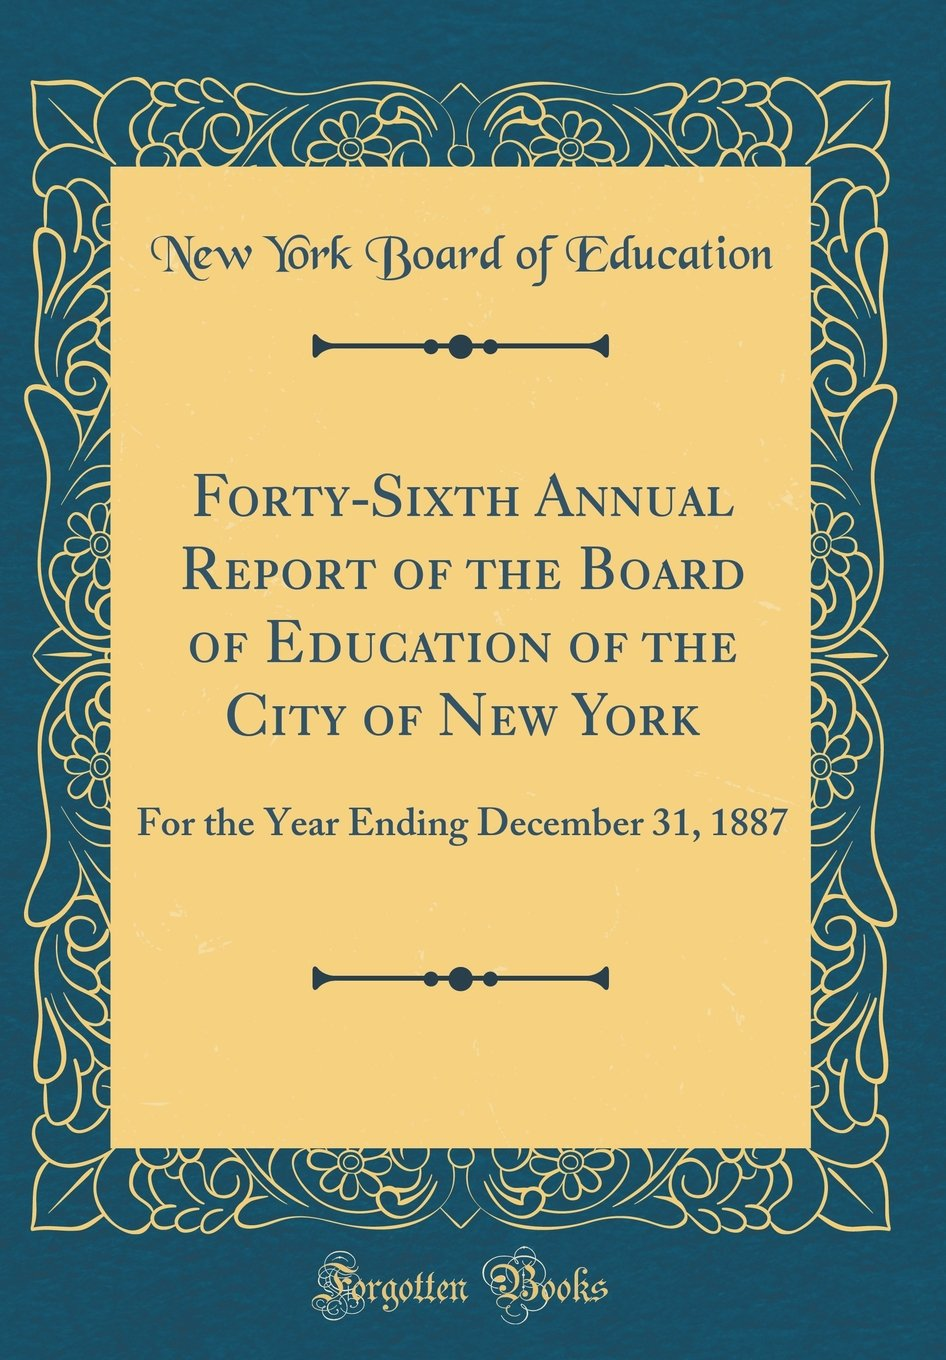 Forty-Sixth Annual Report of the Board of Education of the City of New York: For the Year Ending December 31, 1887 (Classic Reprint) pdf epub